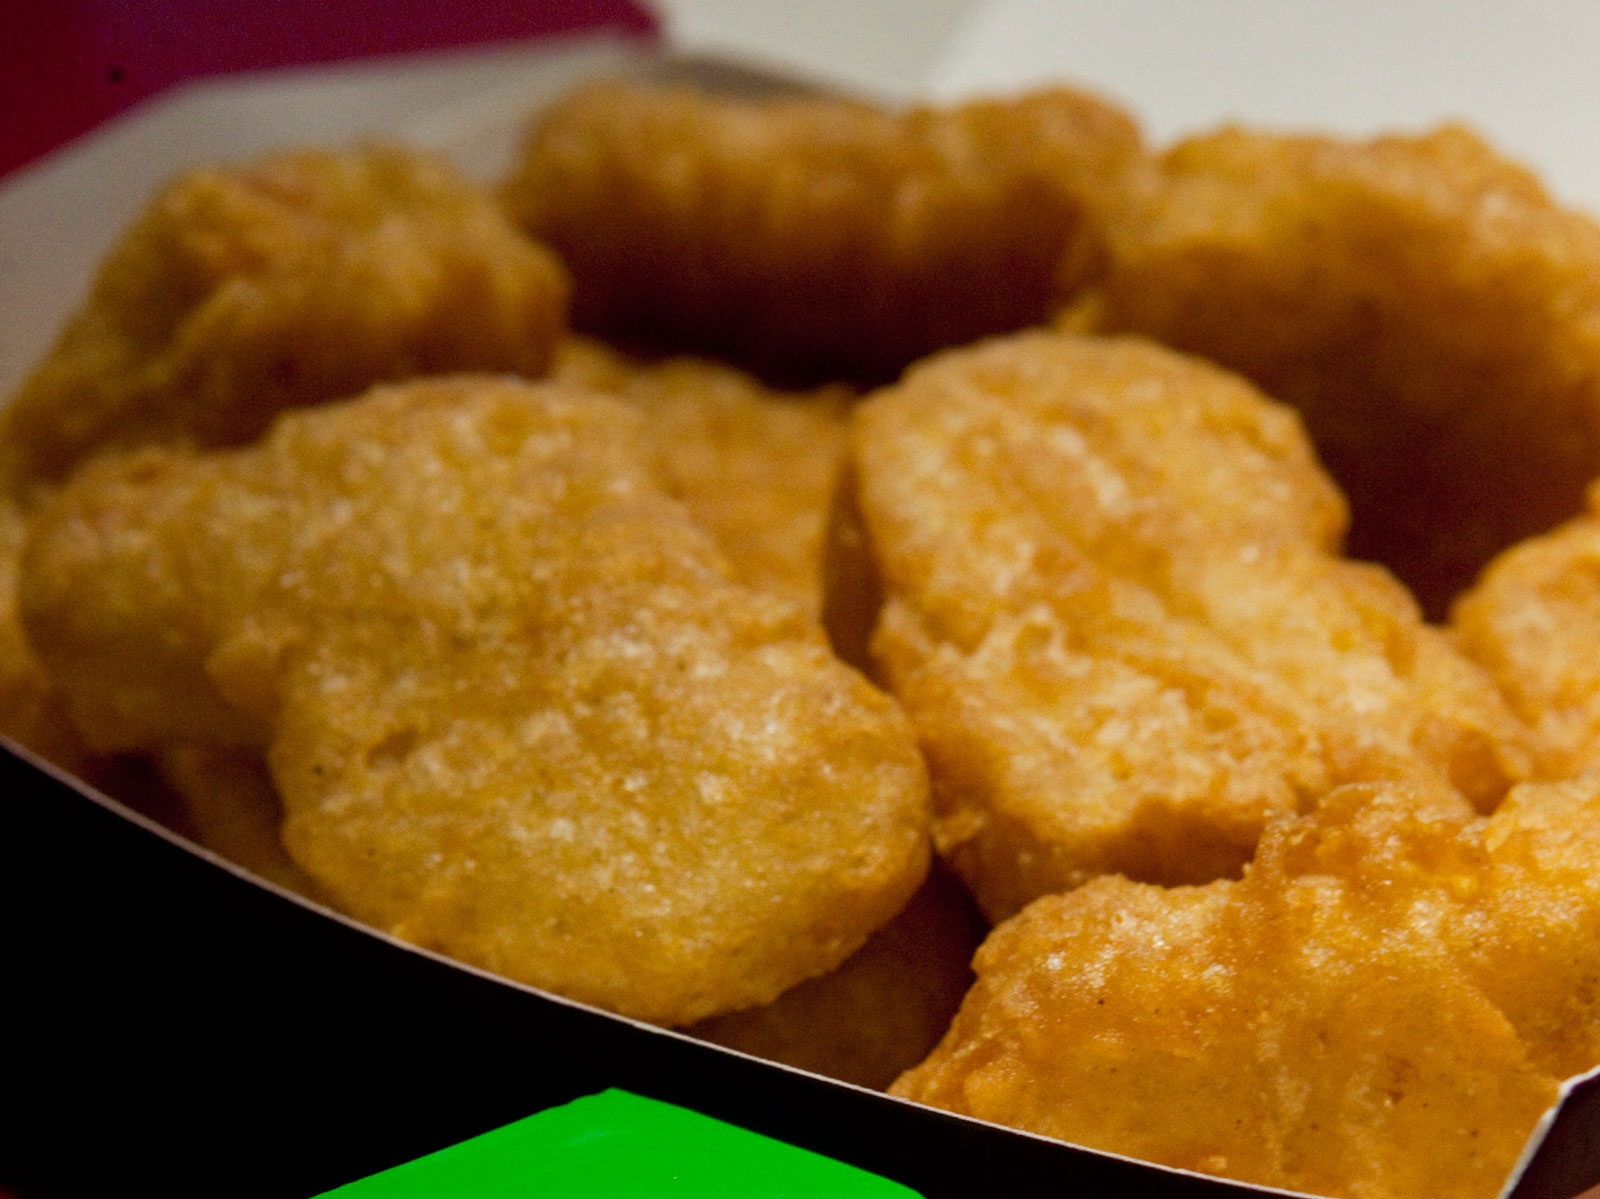 chicken-mcnuggets-FT-BLOG0518.jpg